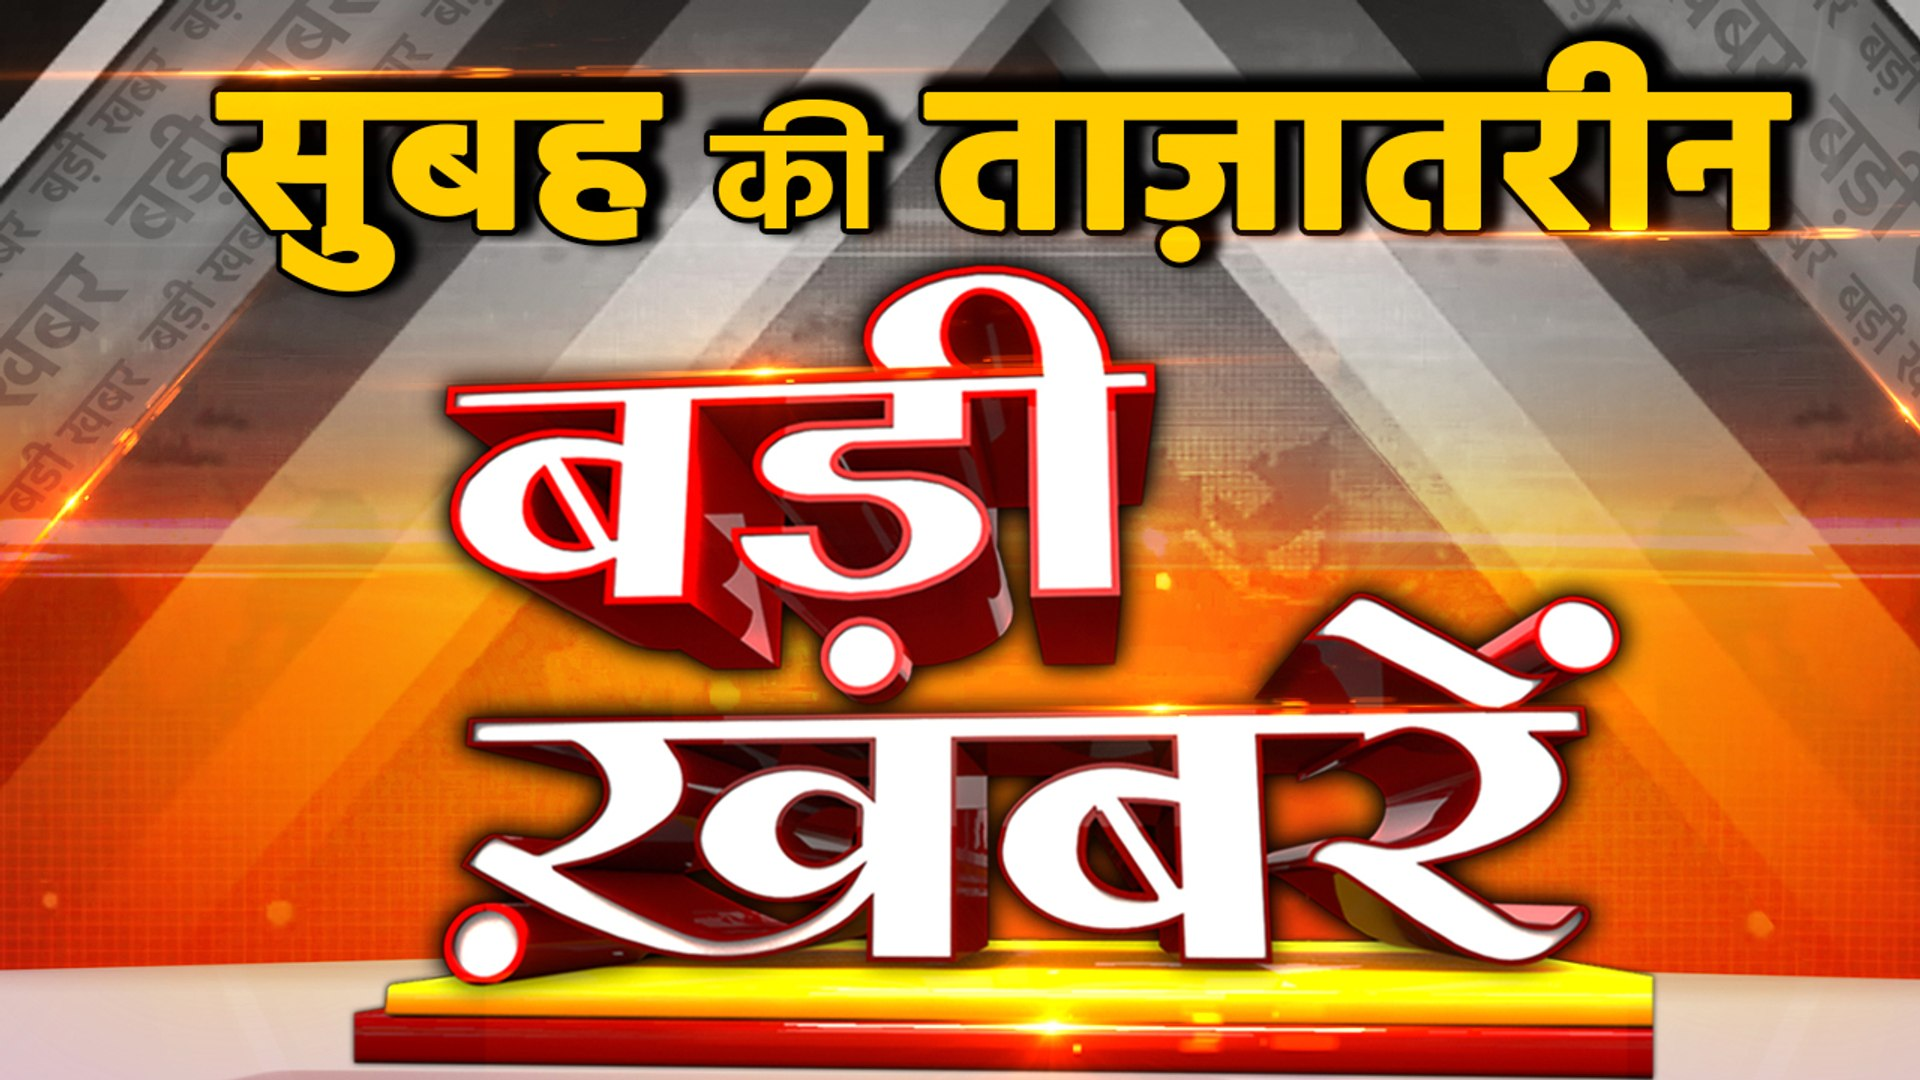 Top News | Latest News | Top Headlines | 28 November  News | India Top News | वनइंडिया हिंदी